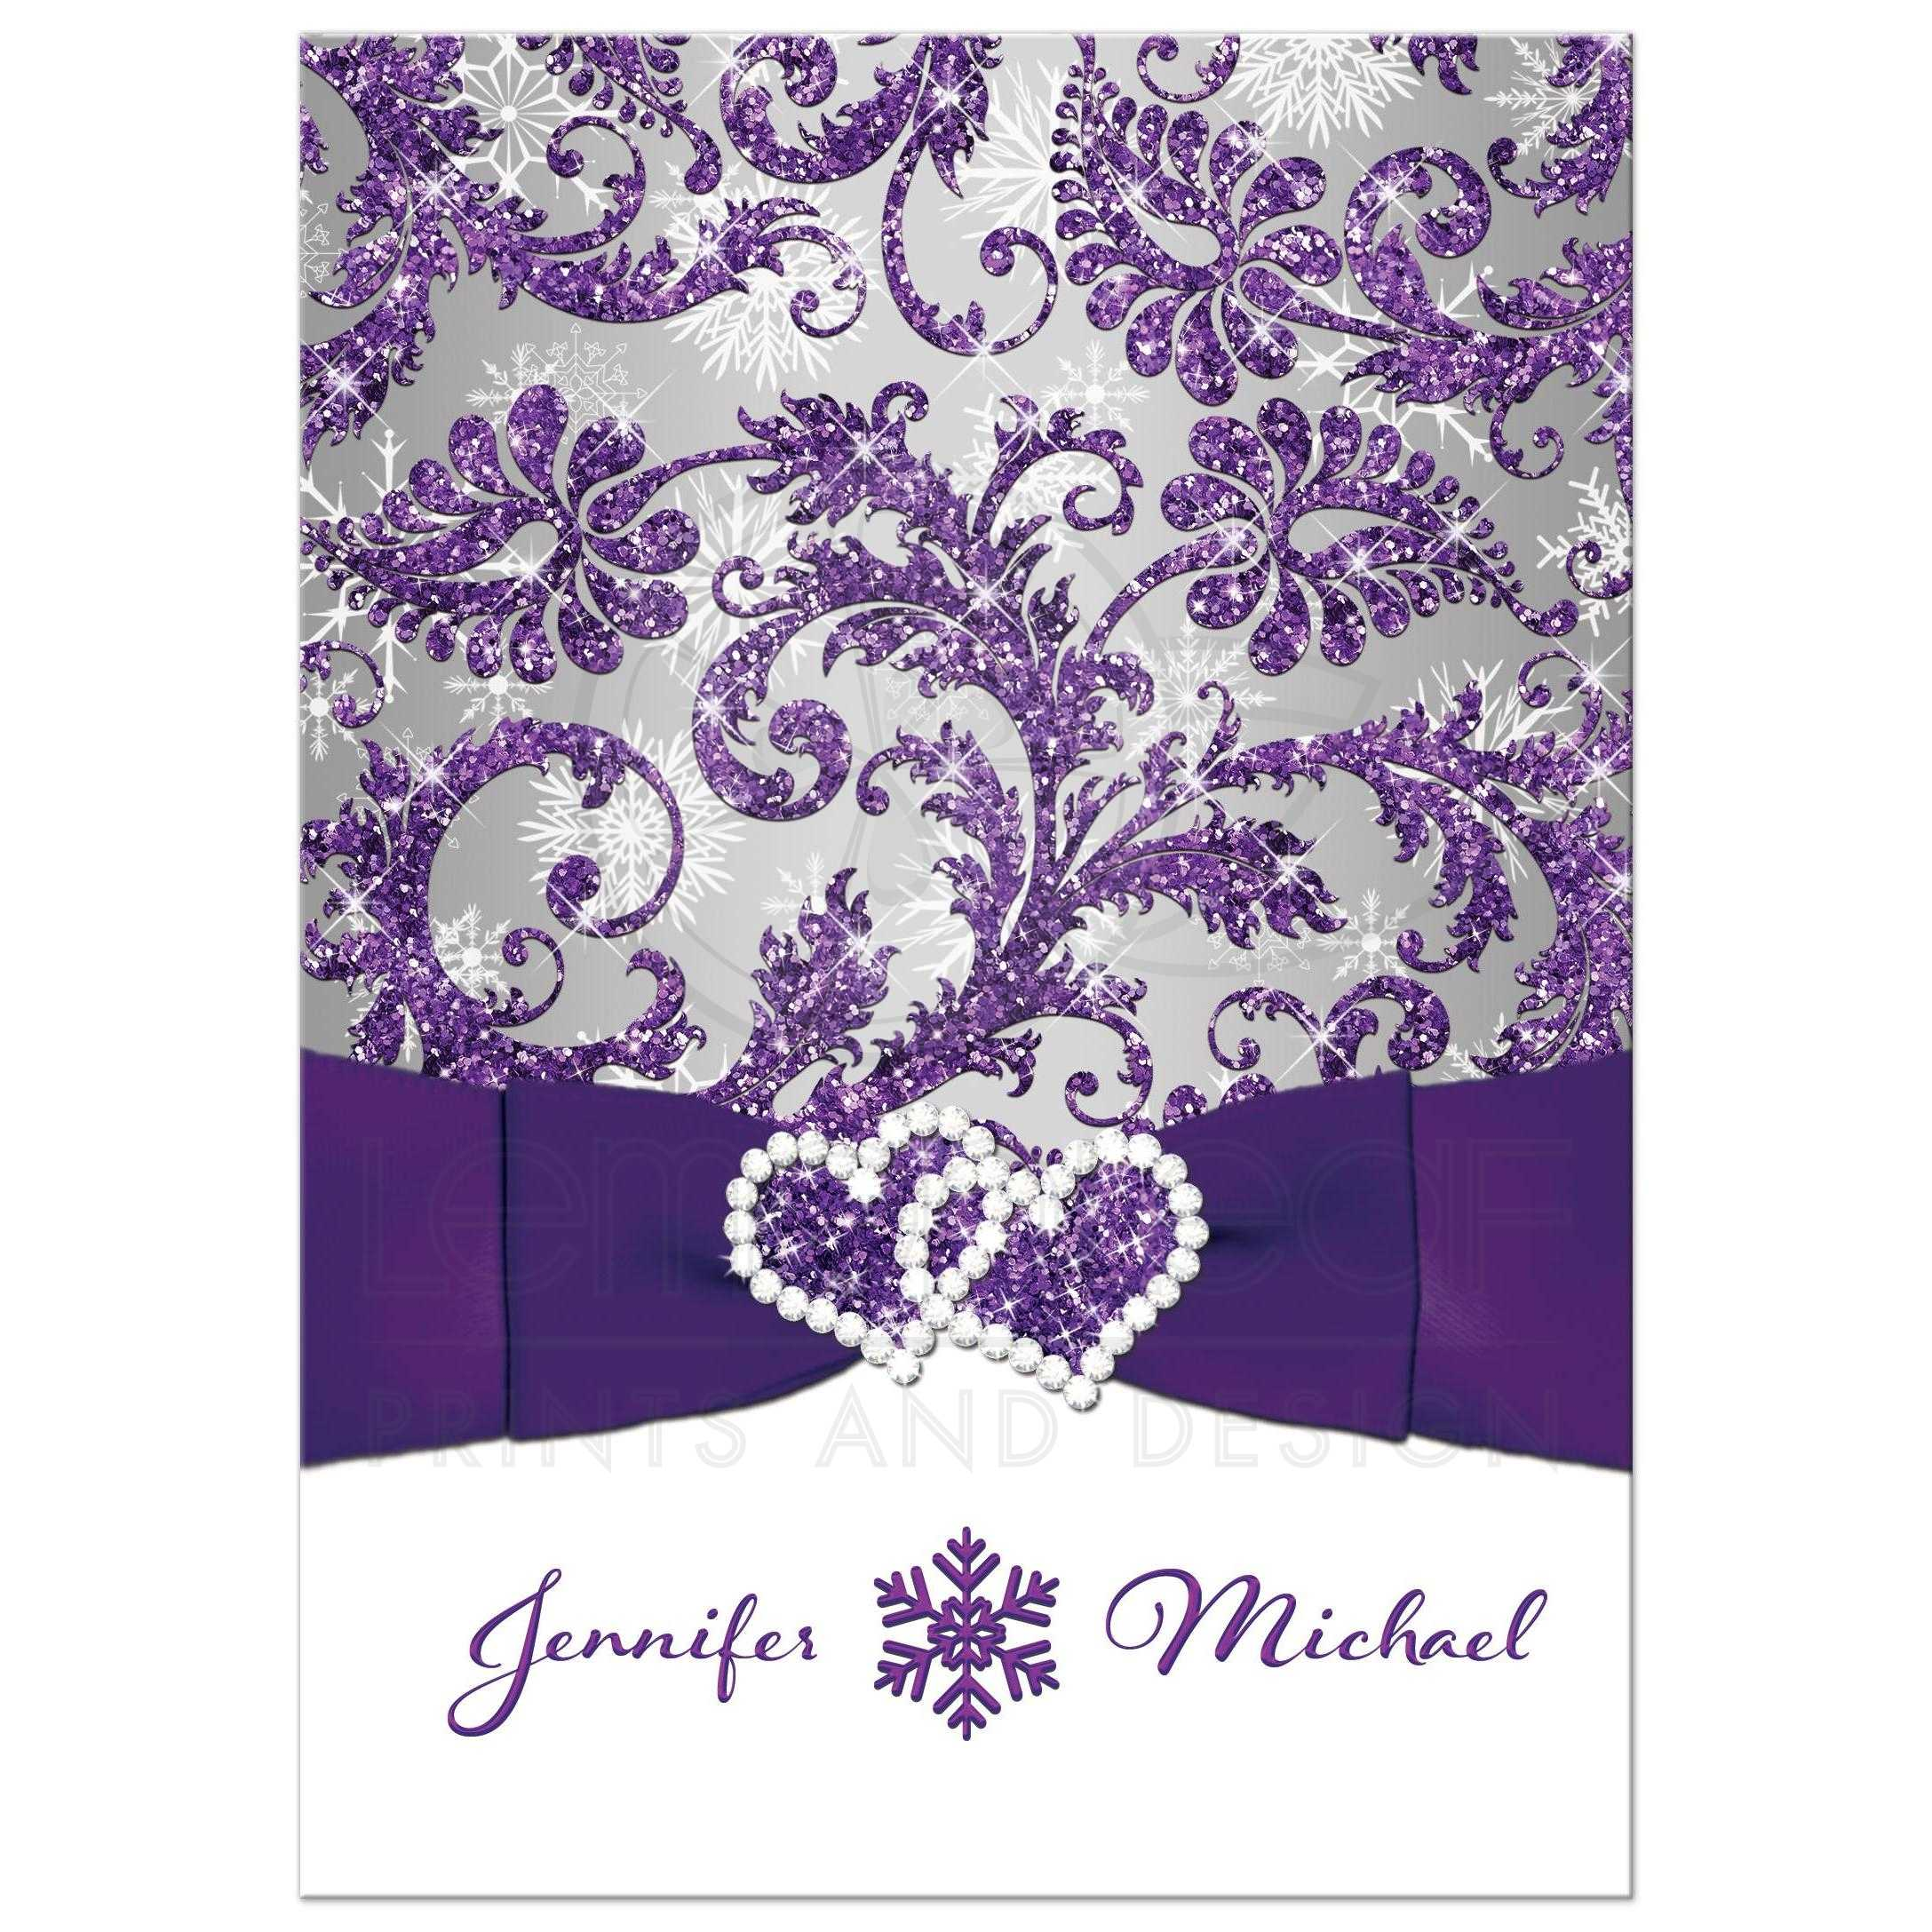 Amazing Great Winter Wonderland Wedding Invitation In Ice Purple, Silver, And White  Snowflakes With Ribbon ...